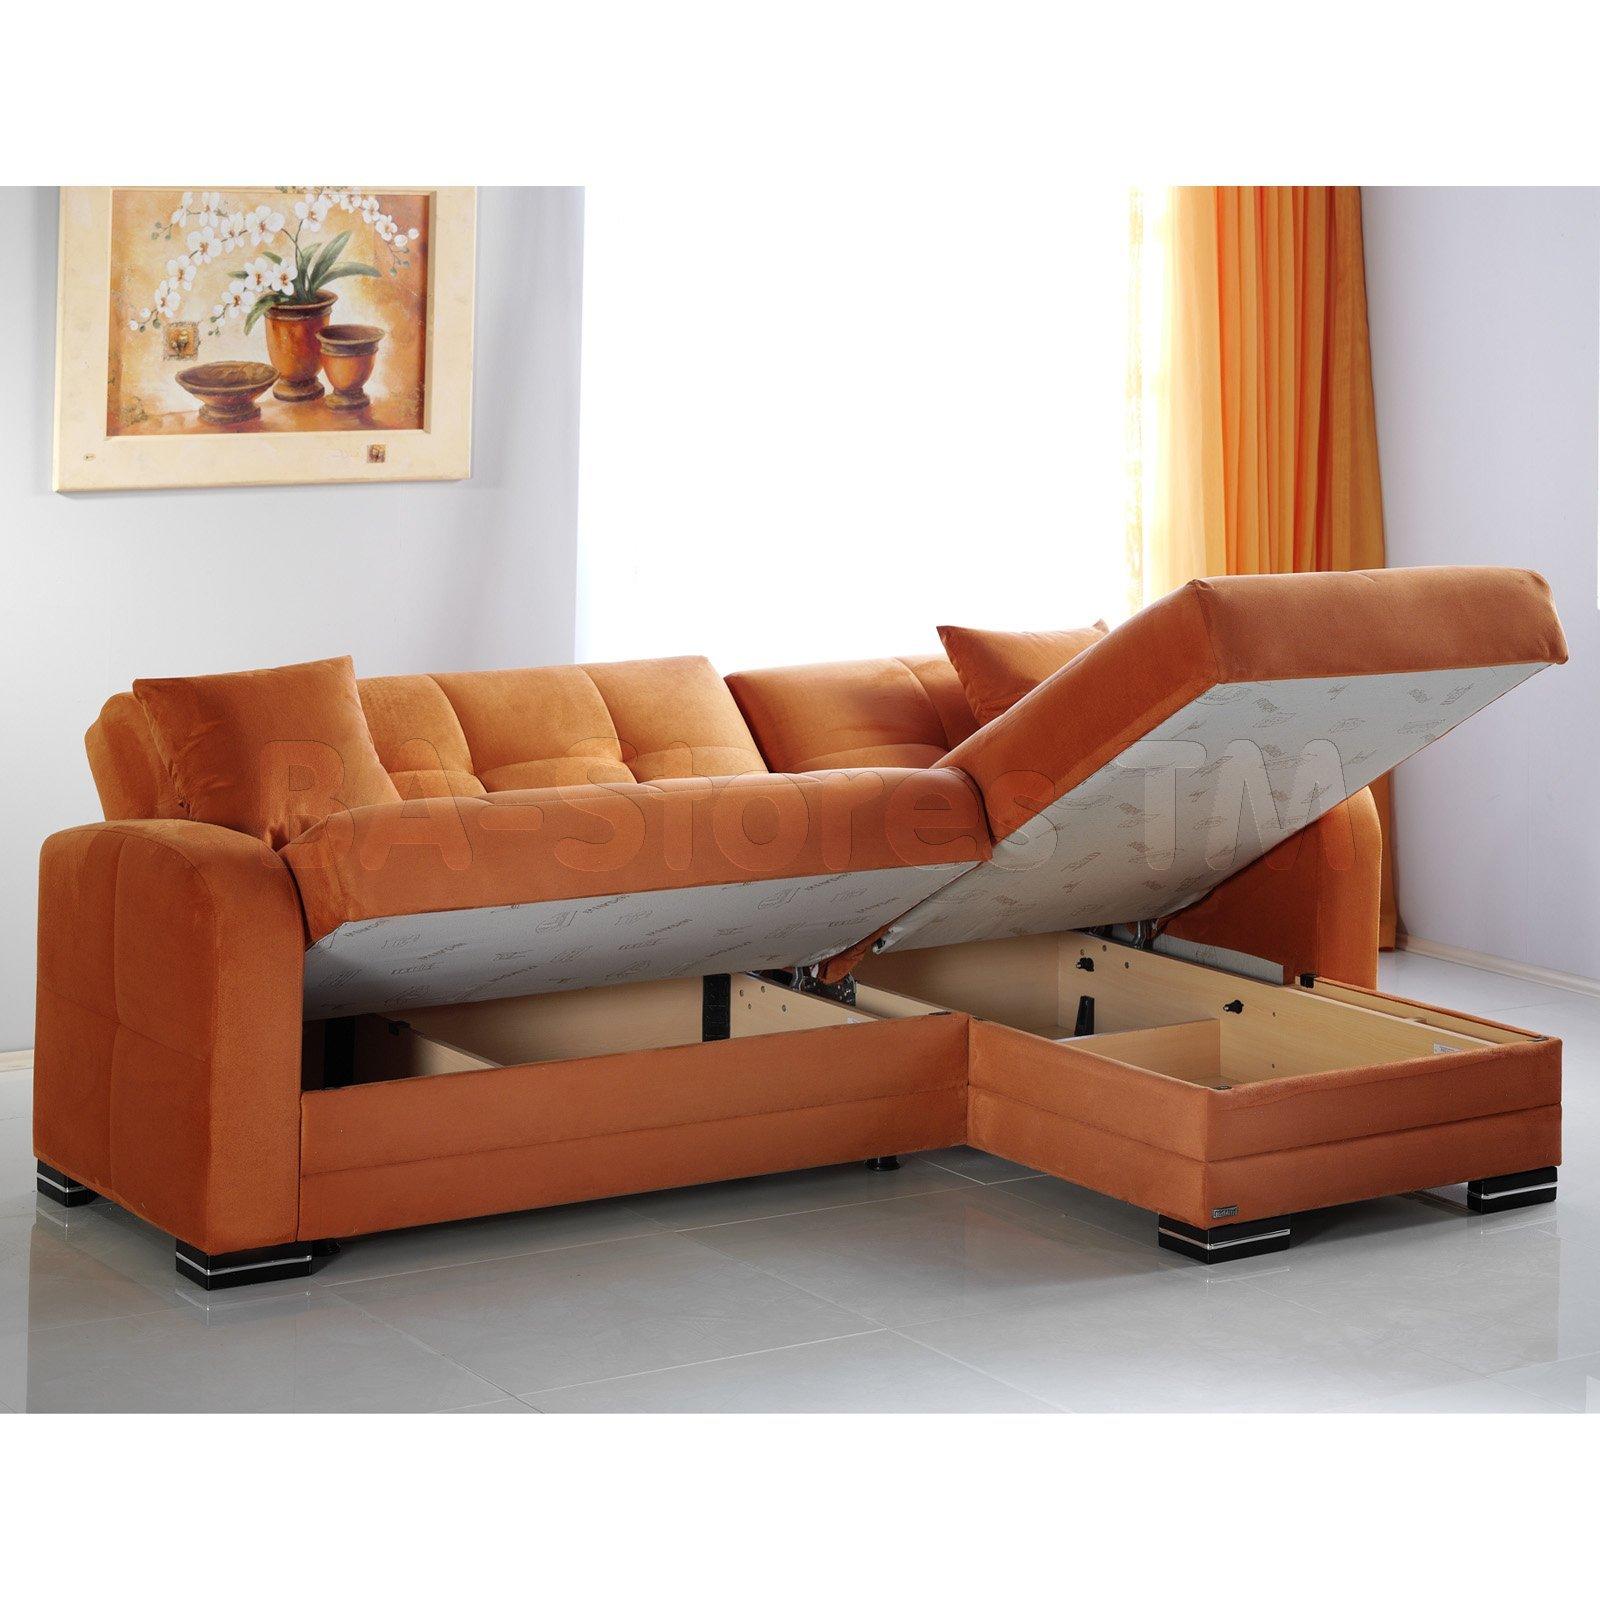 Unique Orange Sectional Sofa 14 For Your Living Room Sofa Ideas with